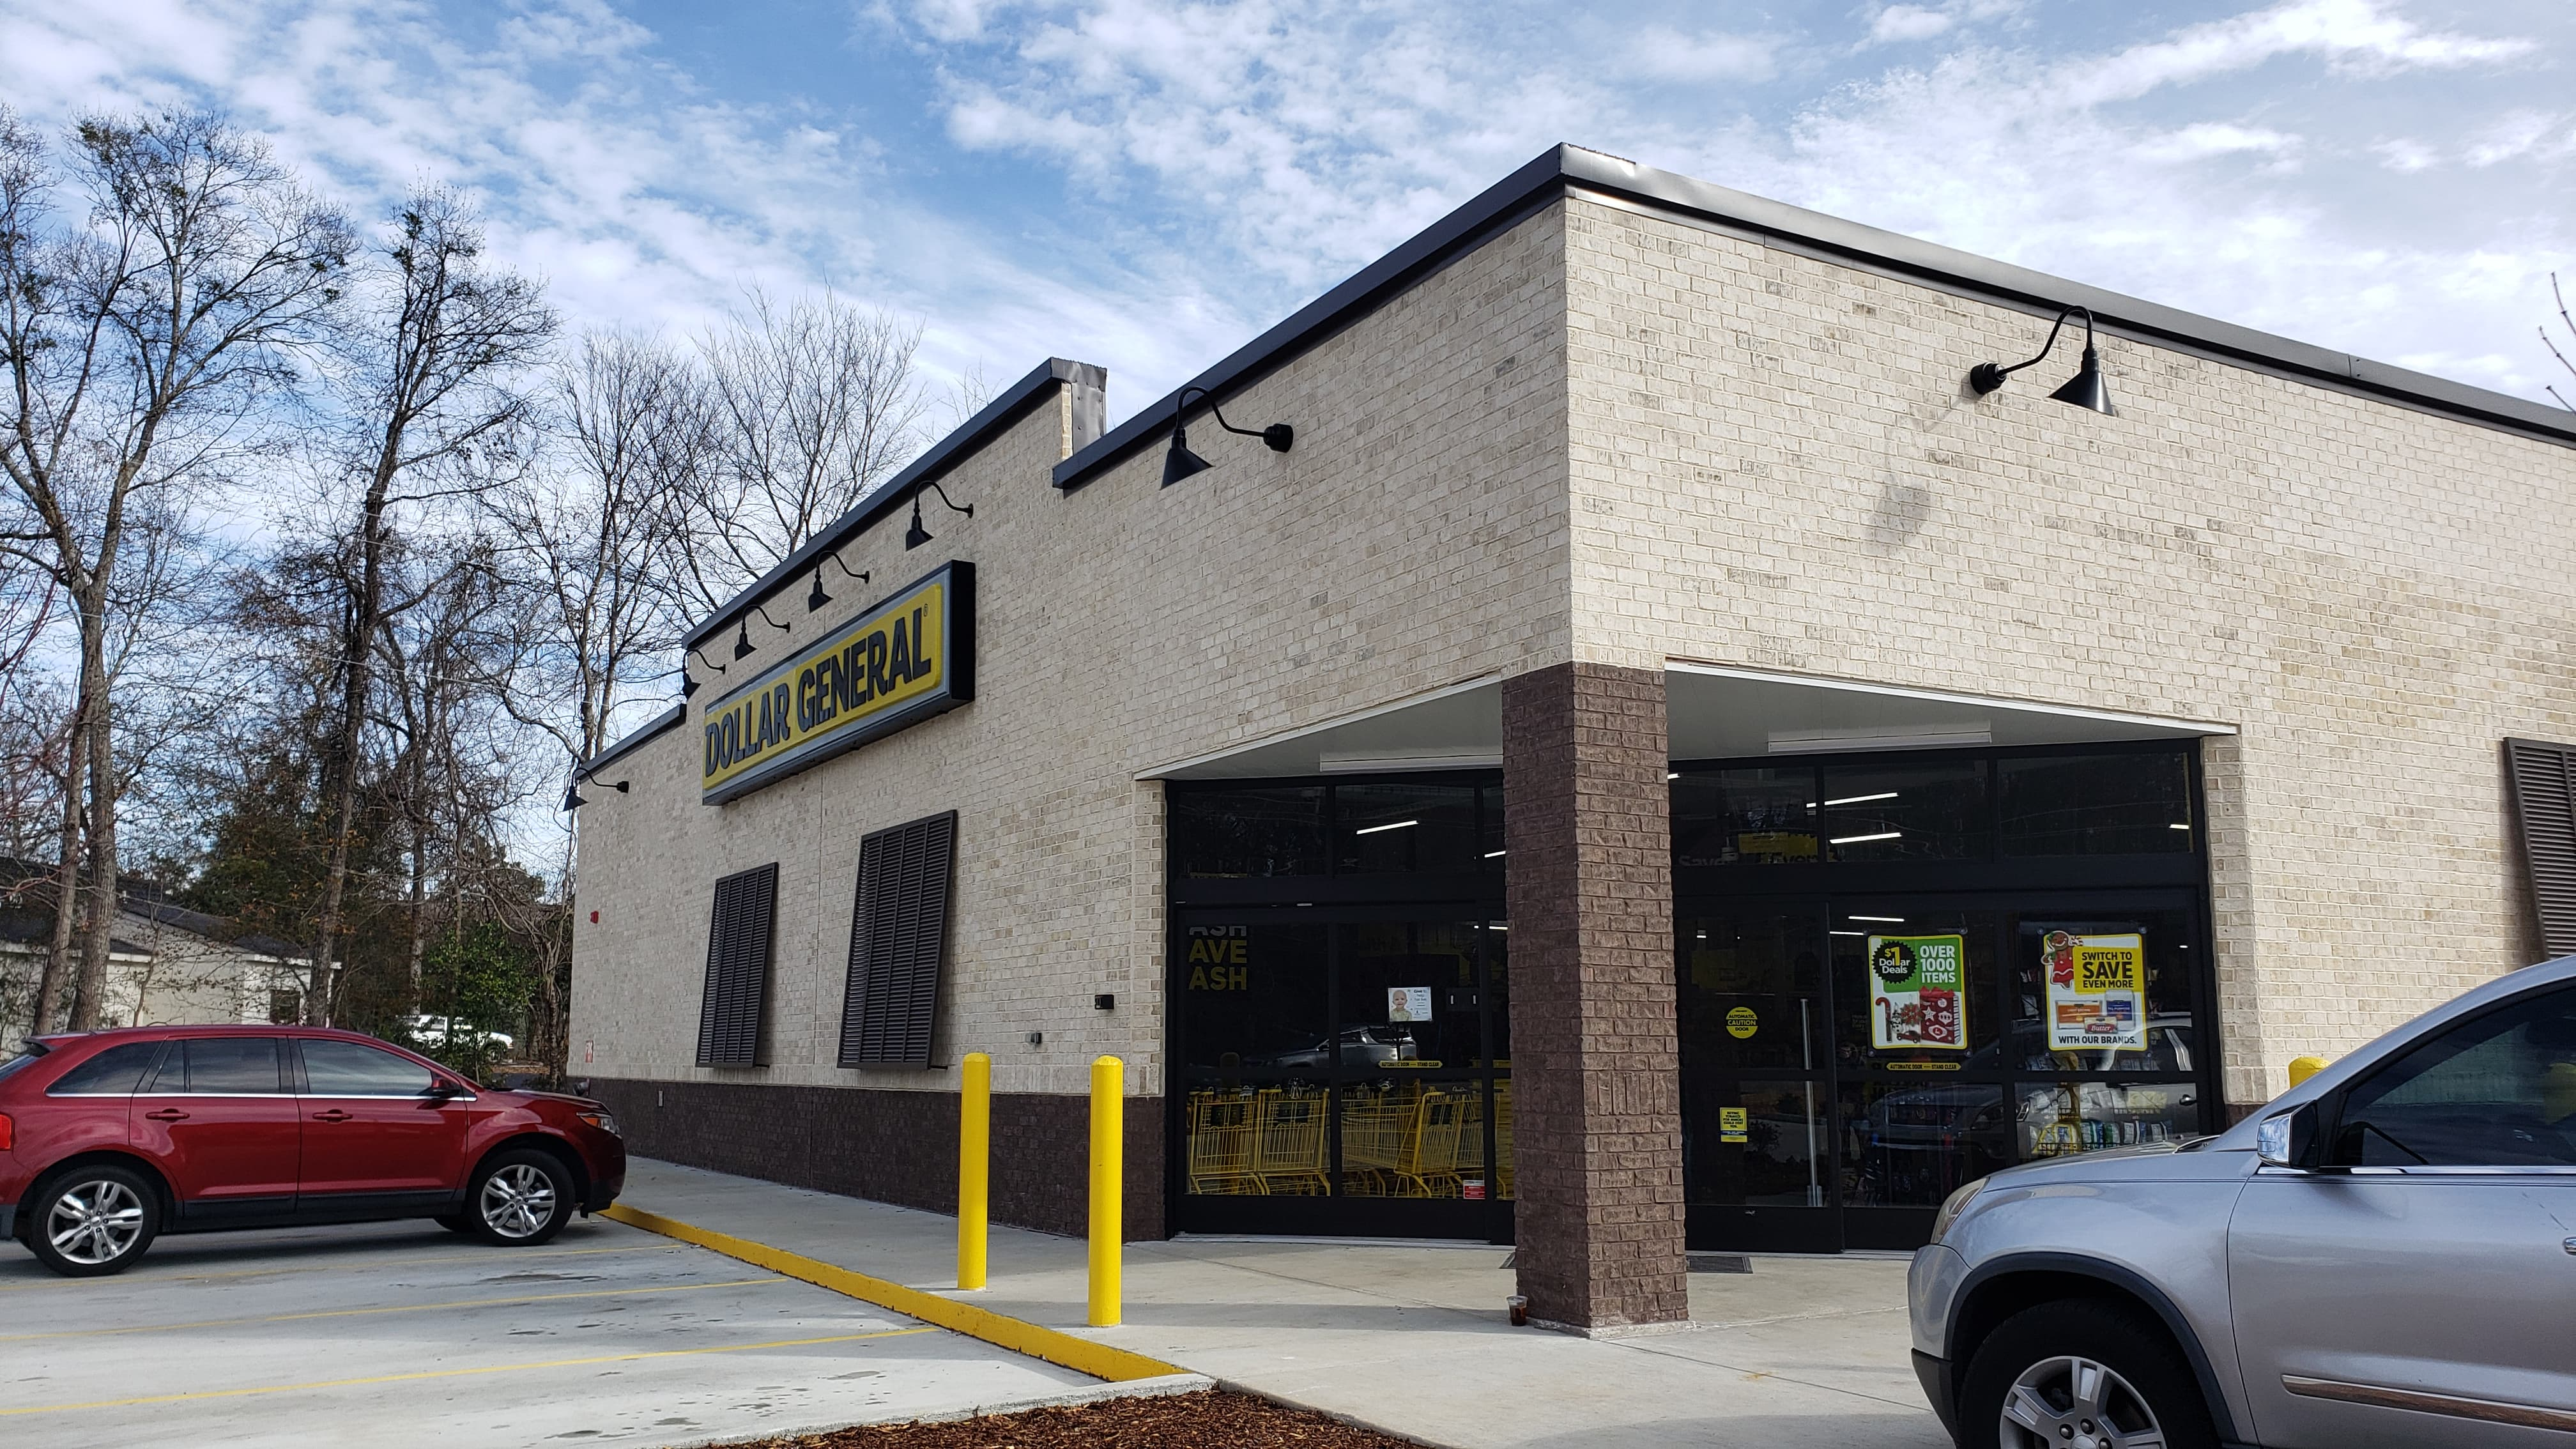 New Dollar General now open in Trussville